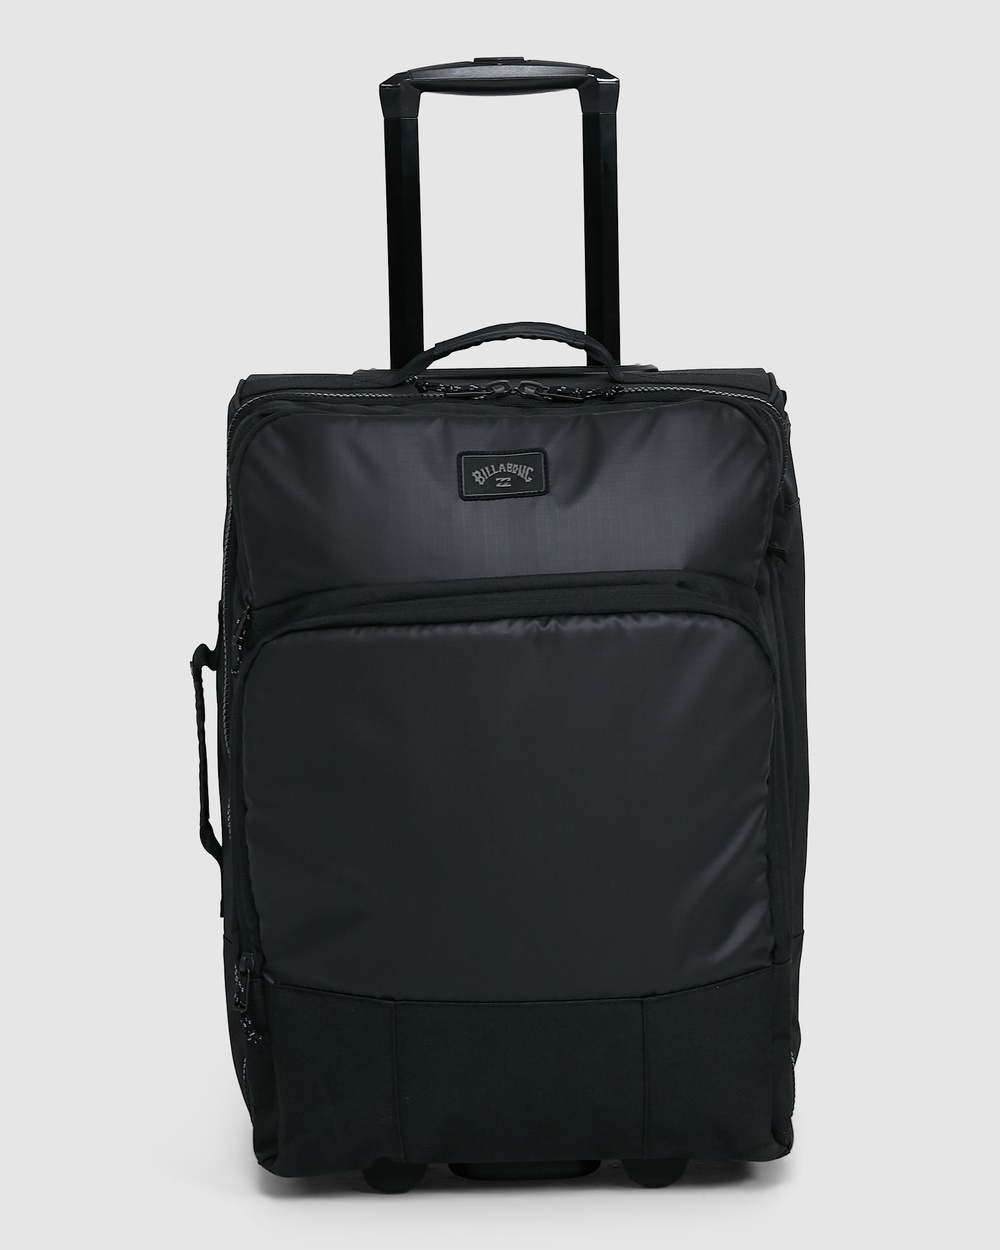 Billabong Booster Carry On Luggage Bag Travel and STEALTH